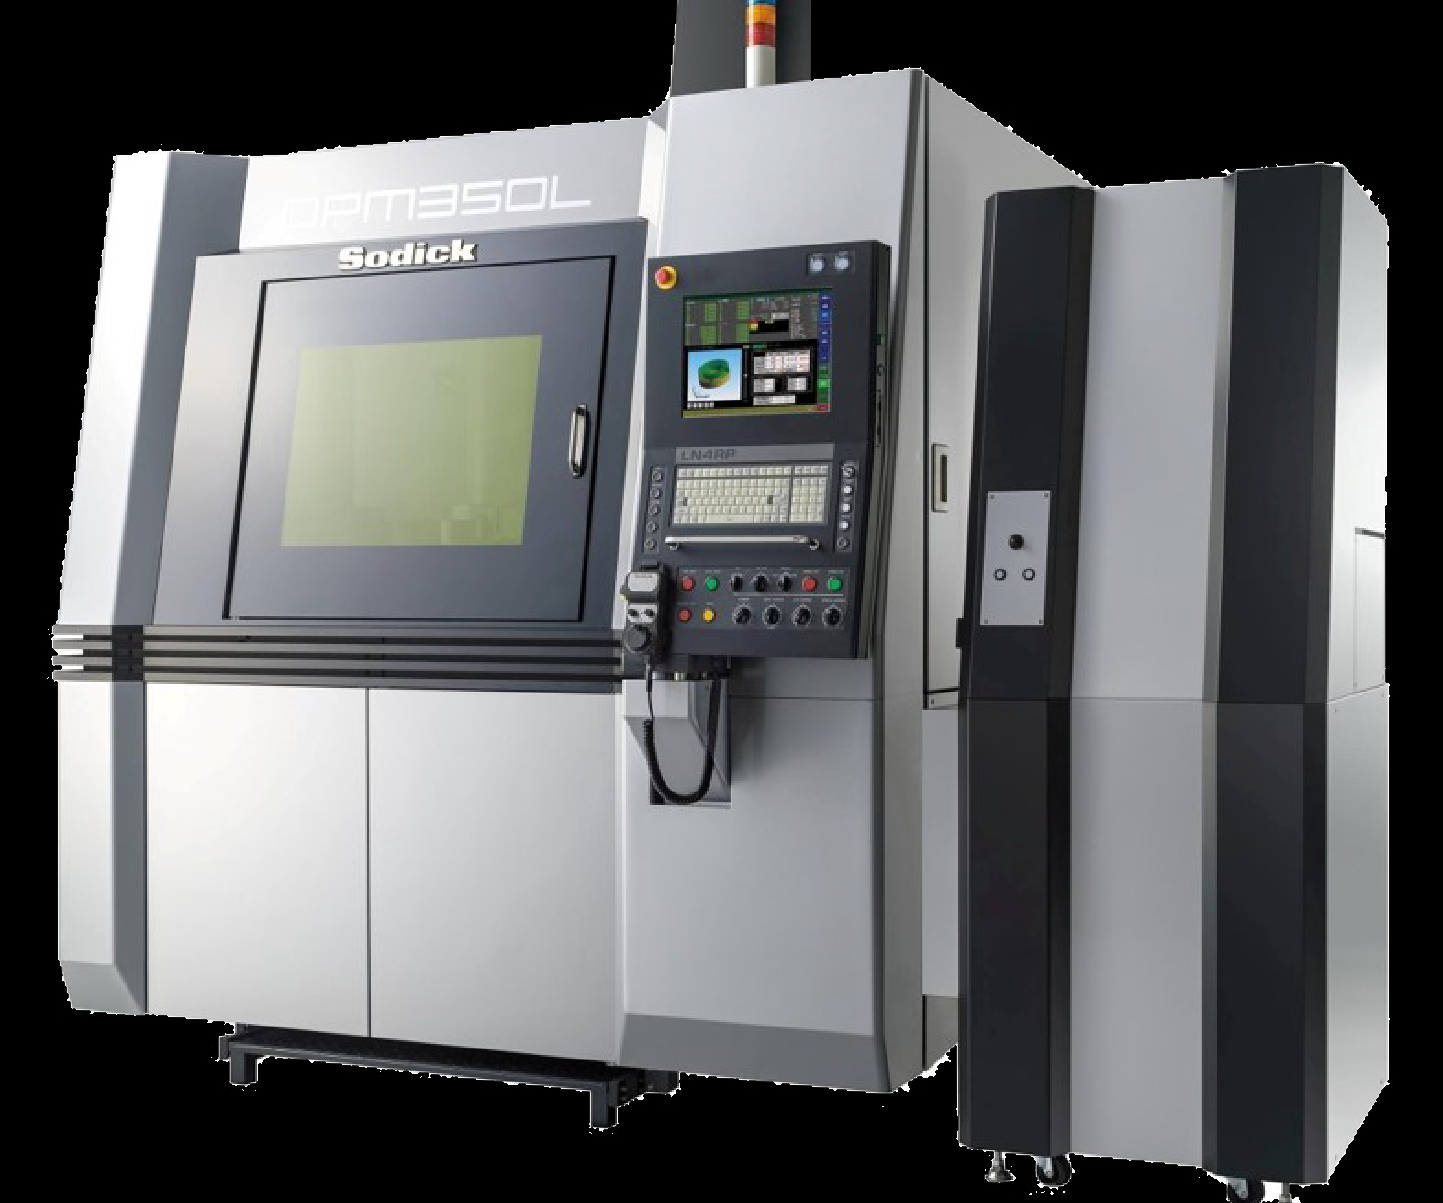 Sodick will display its OPM350L 3D printer at IMTS 2018.